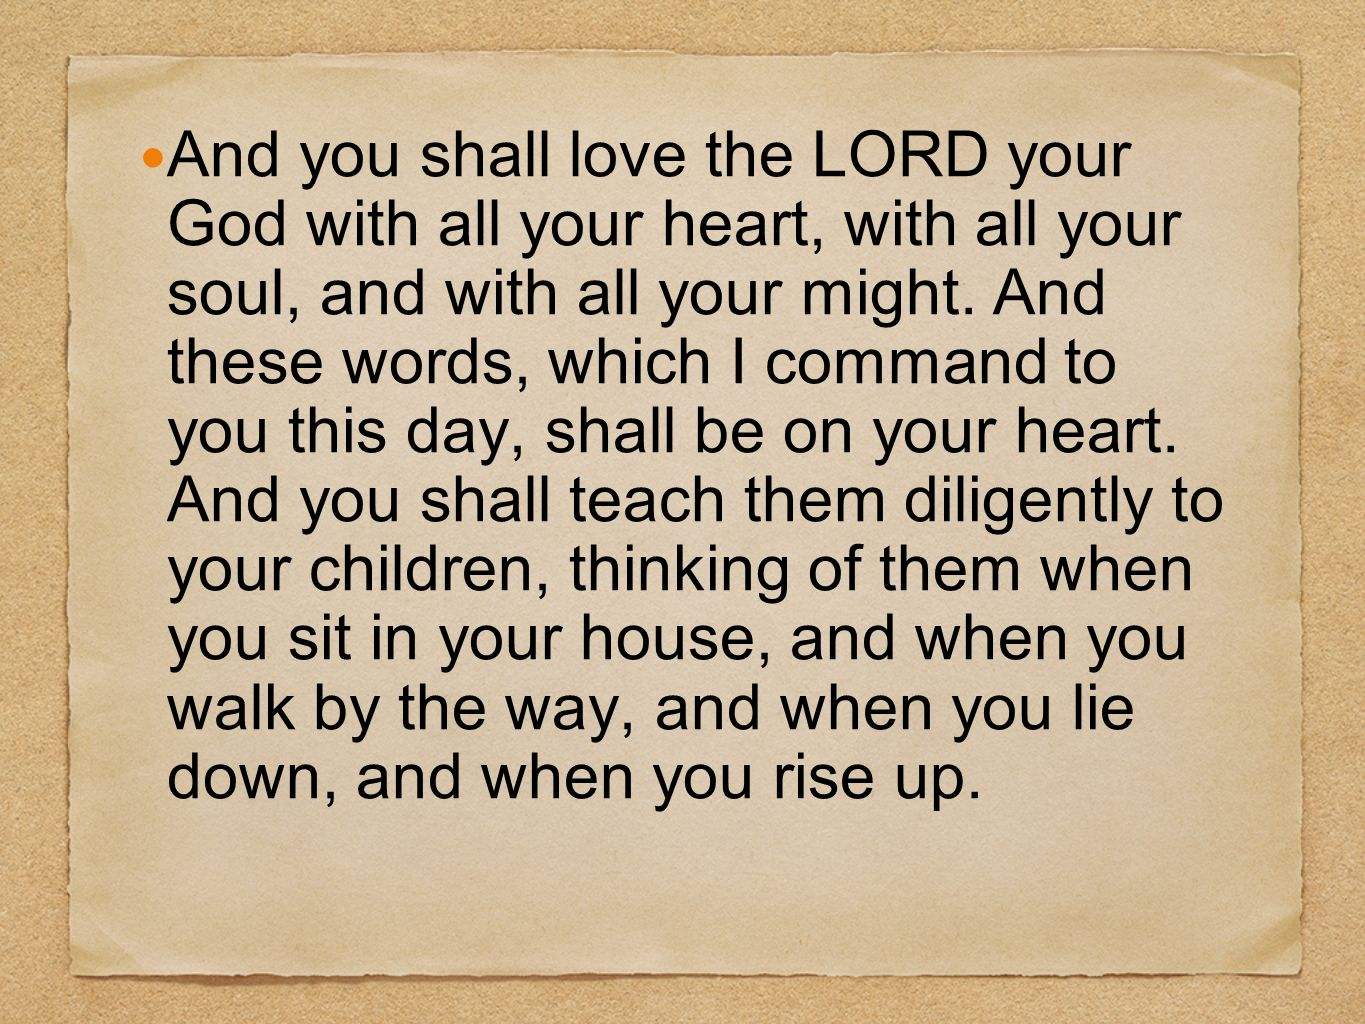 And you shall love the LORD your God with all your heart, with all your soul, and with all your might.